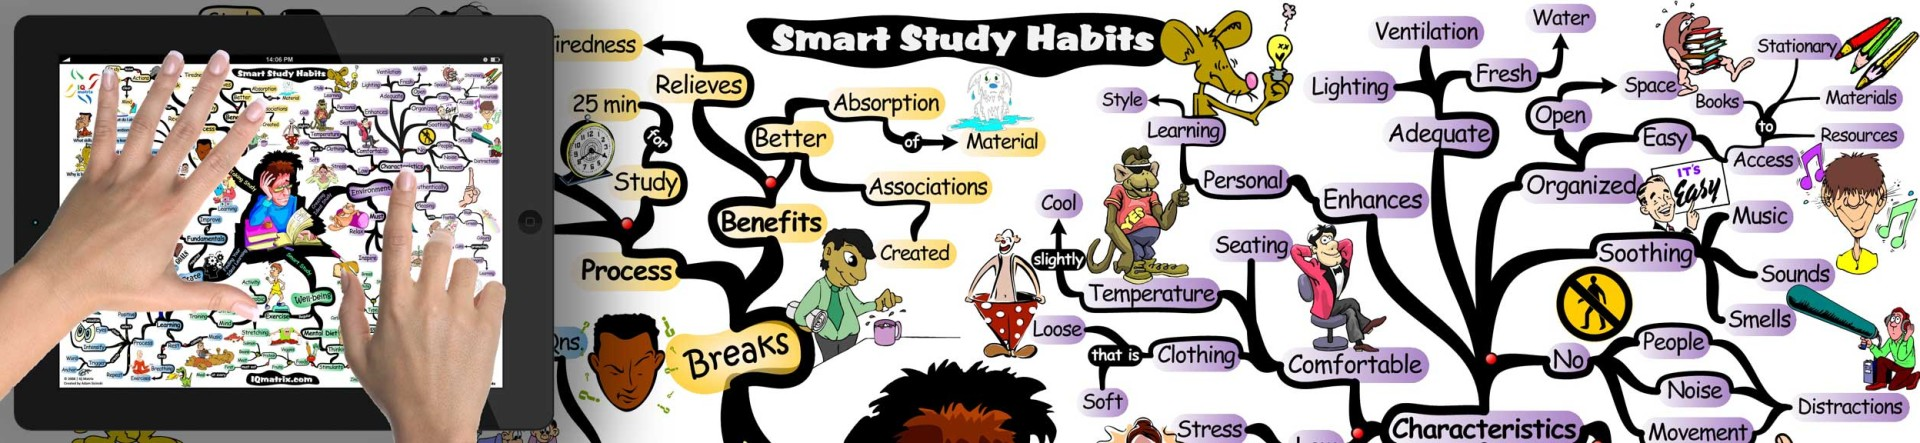 here s everything you need to know to study smarter not harder